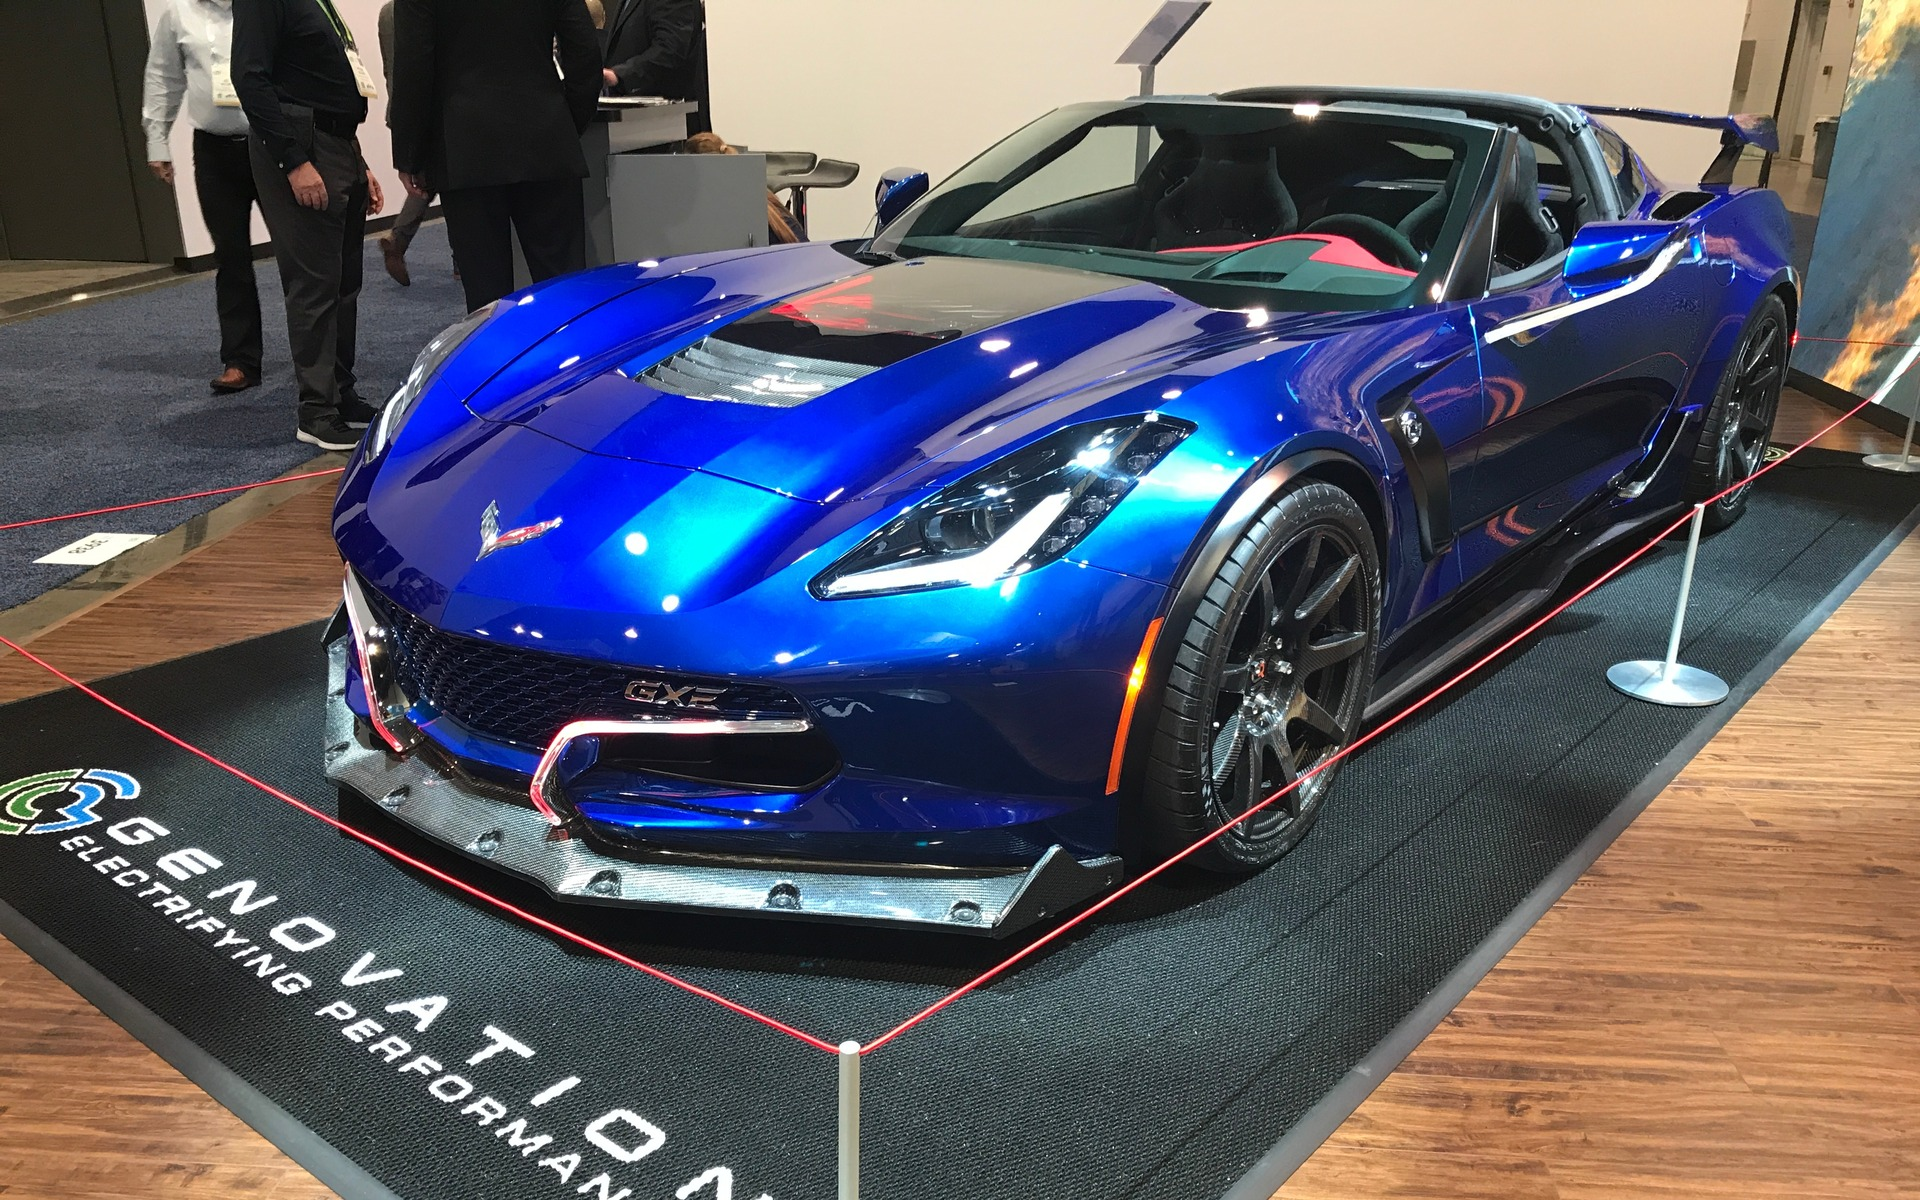 corvette gxe au ces 2018 la voiture lectrique de production la plus rapide au monde 2 7. Black Bedroom Furniture Sets. Home Design Ideas